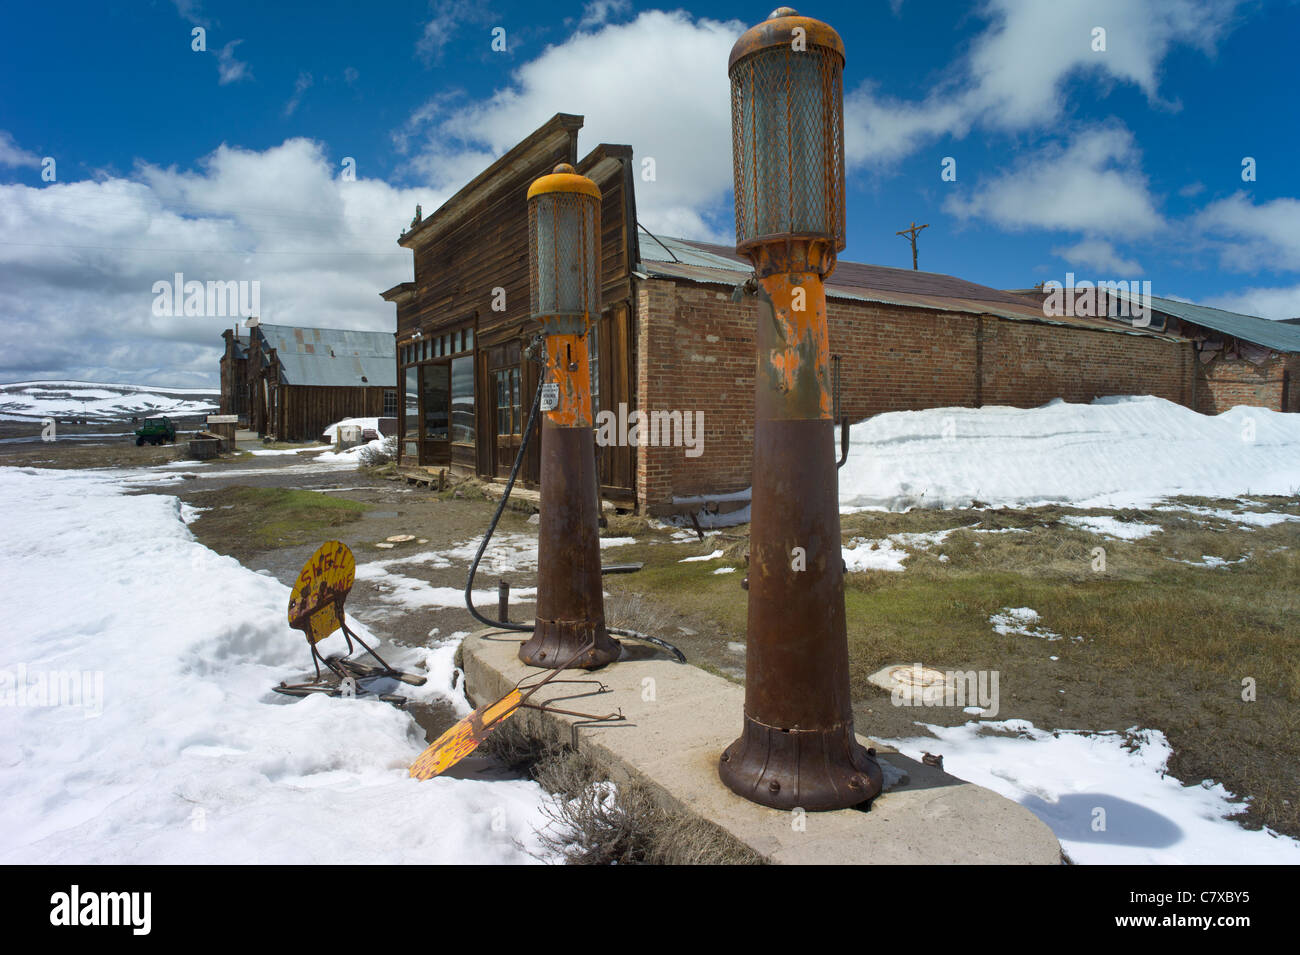 Gas pumps in front of Boone Store and Warehouse, Bodie, a ghost town, California, USA. - Stock Image